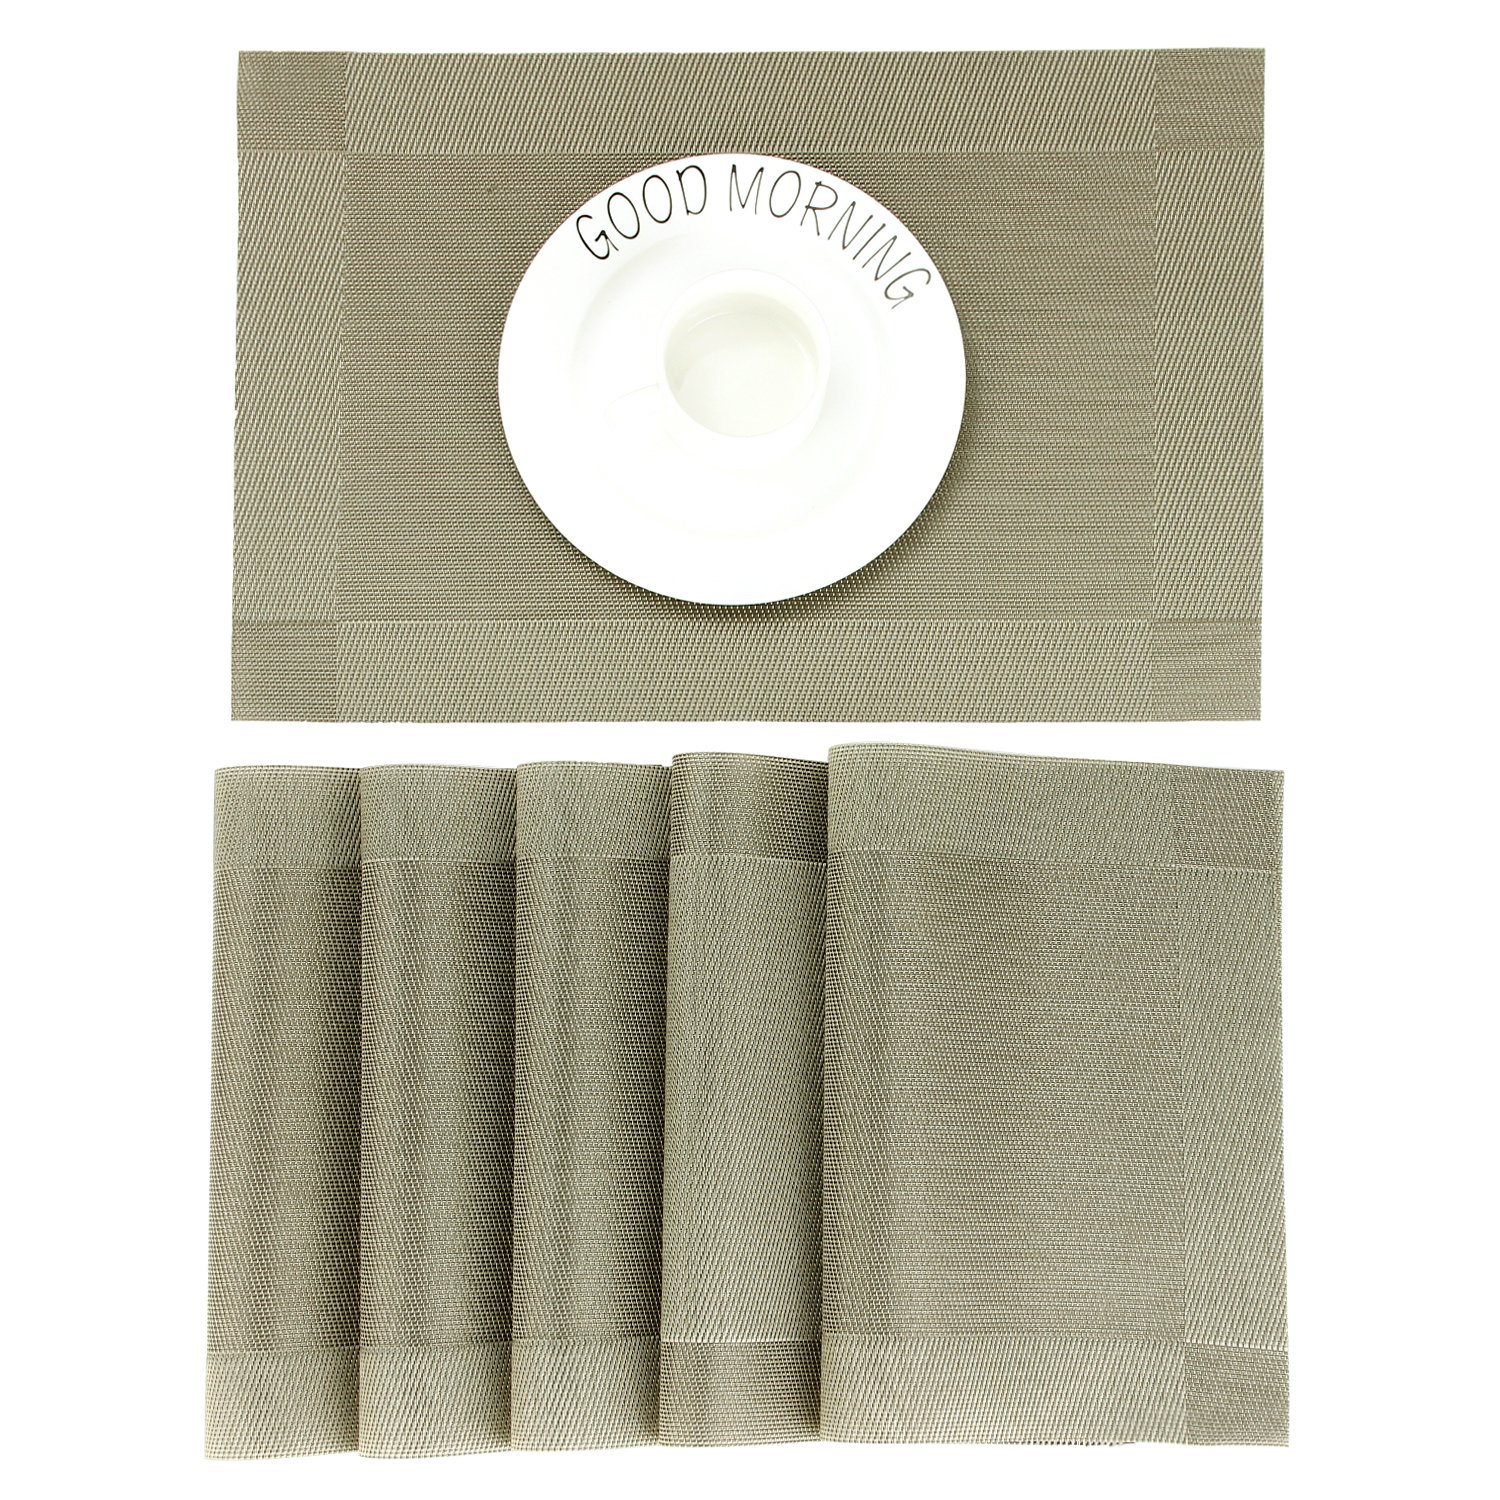 CHAOCHI Table Place Mats Set of 4 Washable Dinner Mats Stain Resistant Nonslip Placemats Wipe Clean PVC Woven Vinyl Table Mats for Kitchen Dining Tablet, Coffee Shop, Restaurant, 45CM X 30CM (Beige)